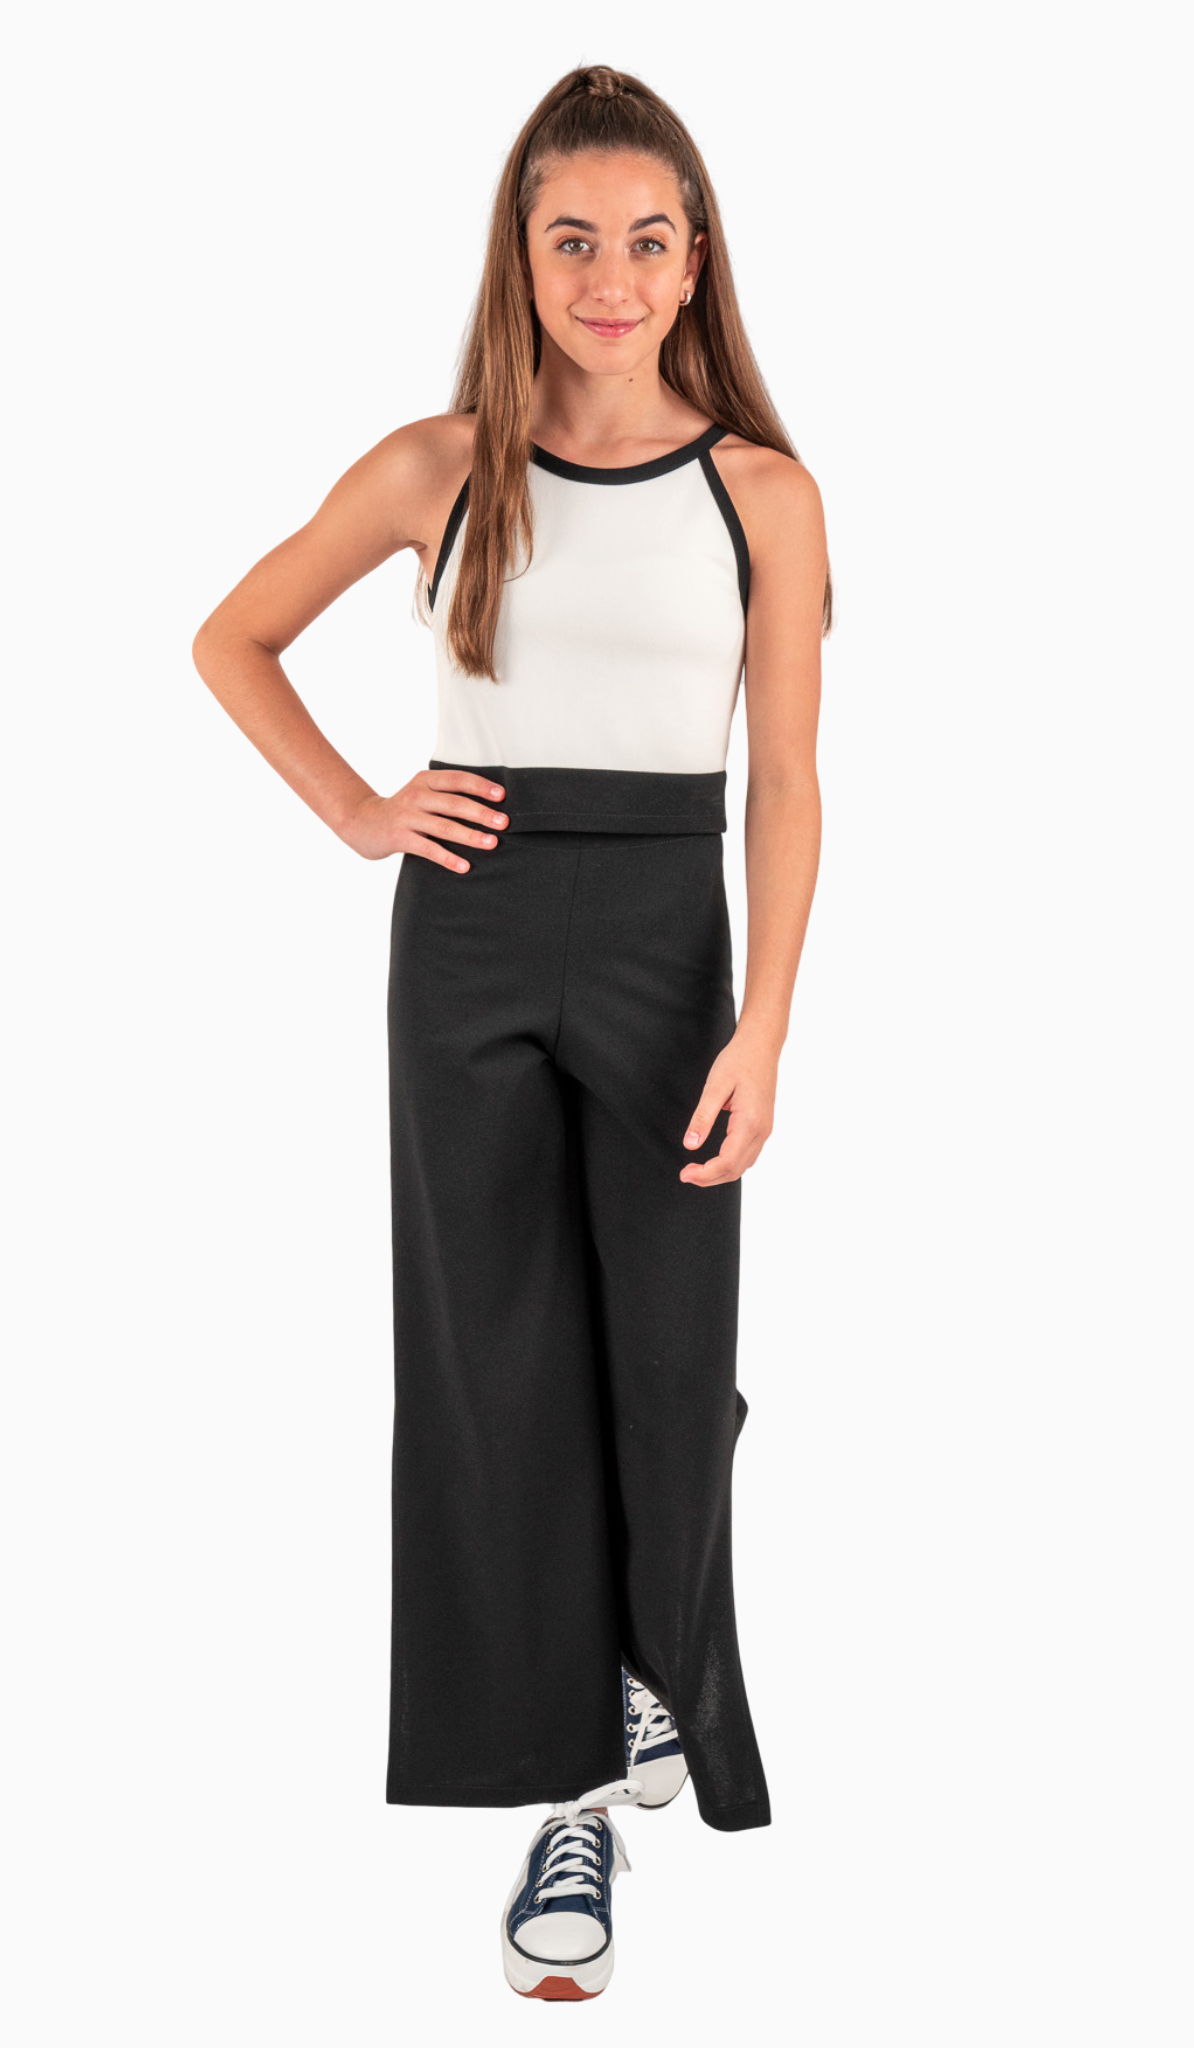 Sally Miller Moda Pant - Black stretch crepe knit wide leg cropped pant with side slit